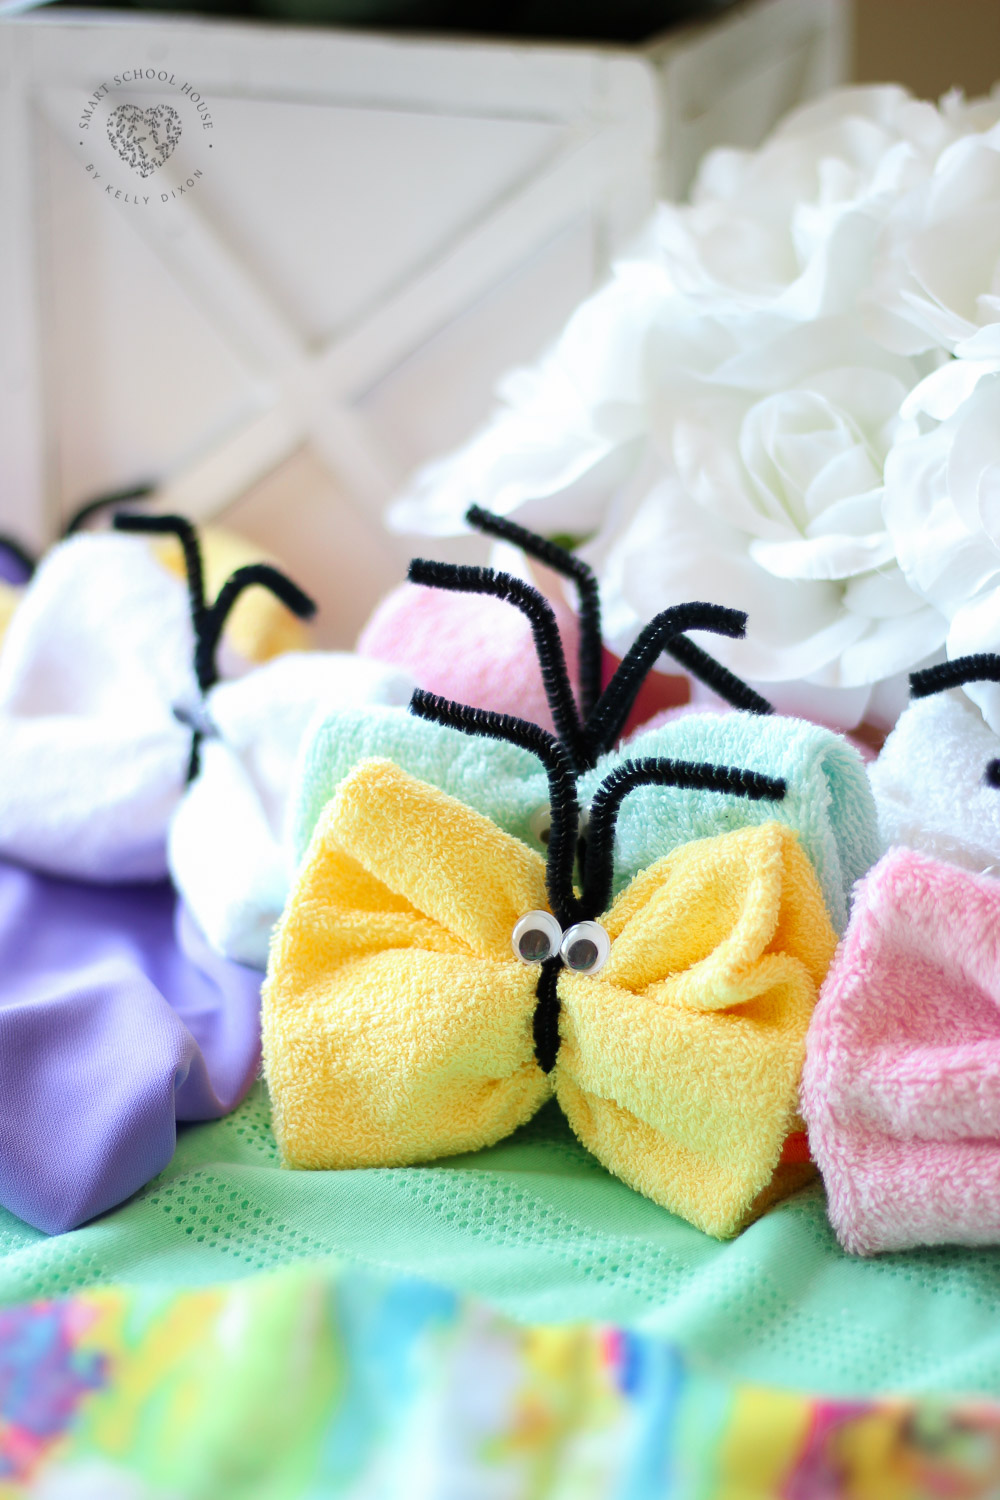 Step by step visual instructions teaching you how to make washcloth butterflies. An adorable and easy craft idea for kids too! #washclothanimals #washclothcraft #craftideasforkids